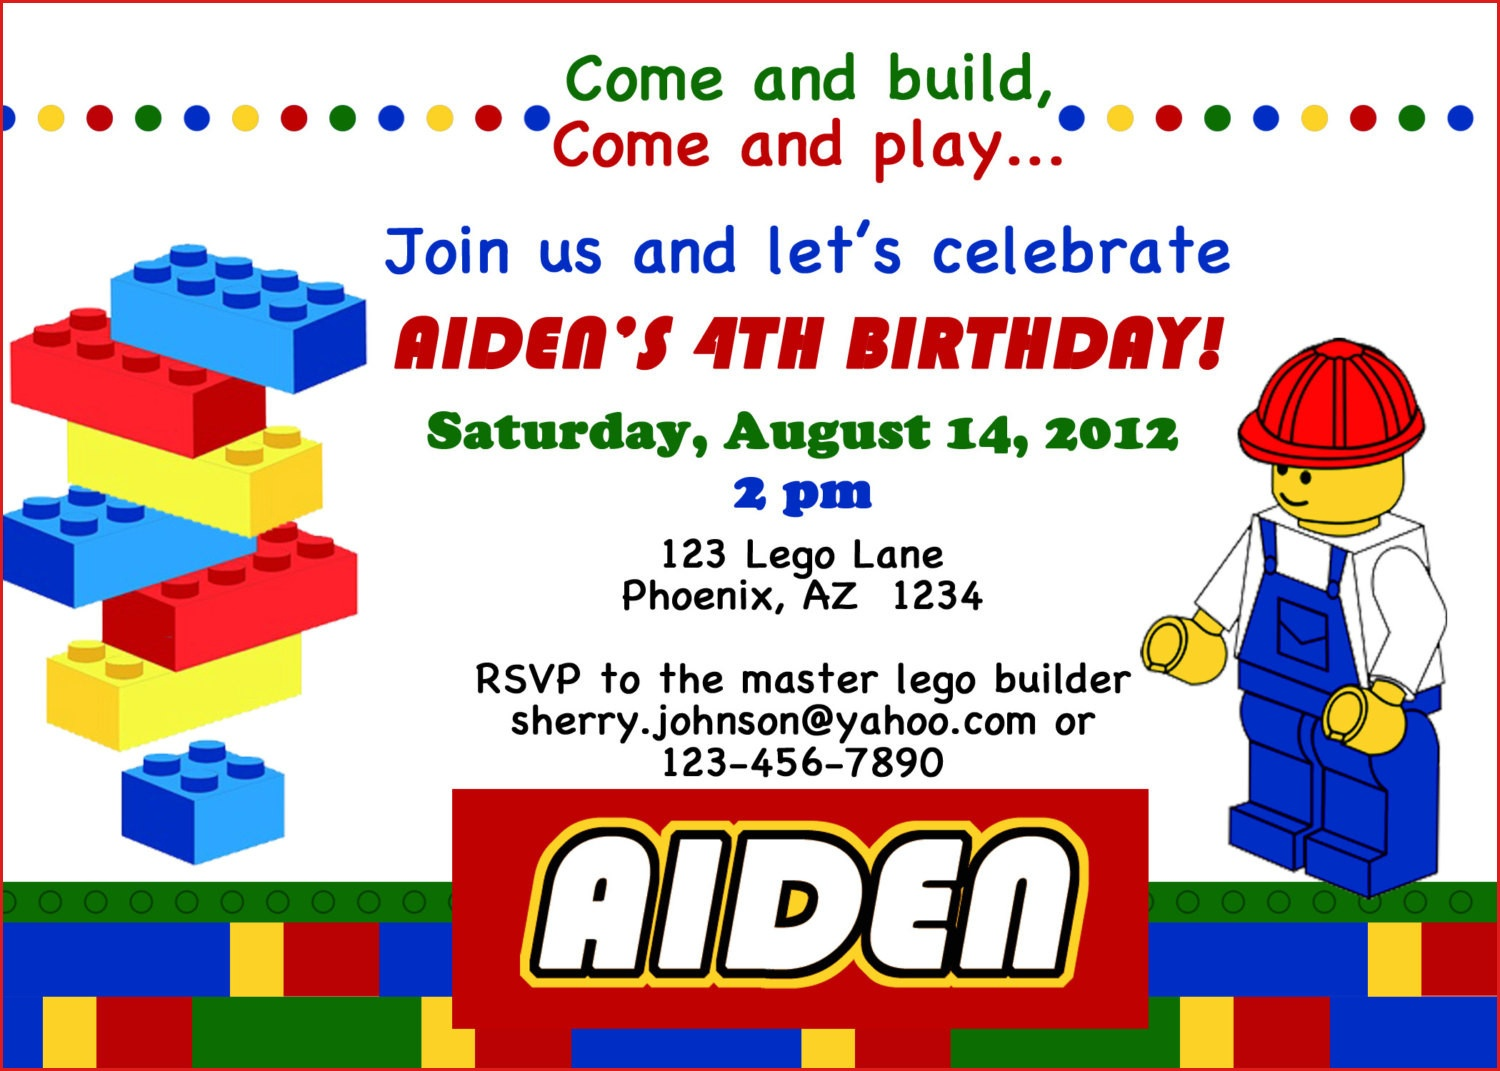 Lego Themed Birthday Party Invitations Dolanpedia Lego Birthday Card - Lego Party Invitations Printable Free